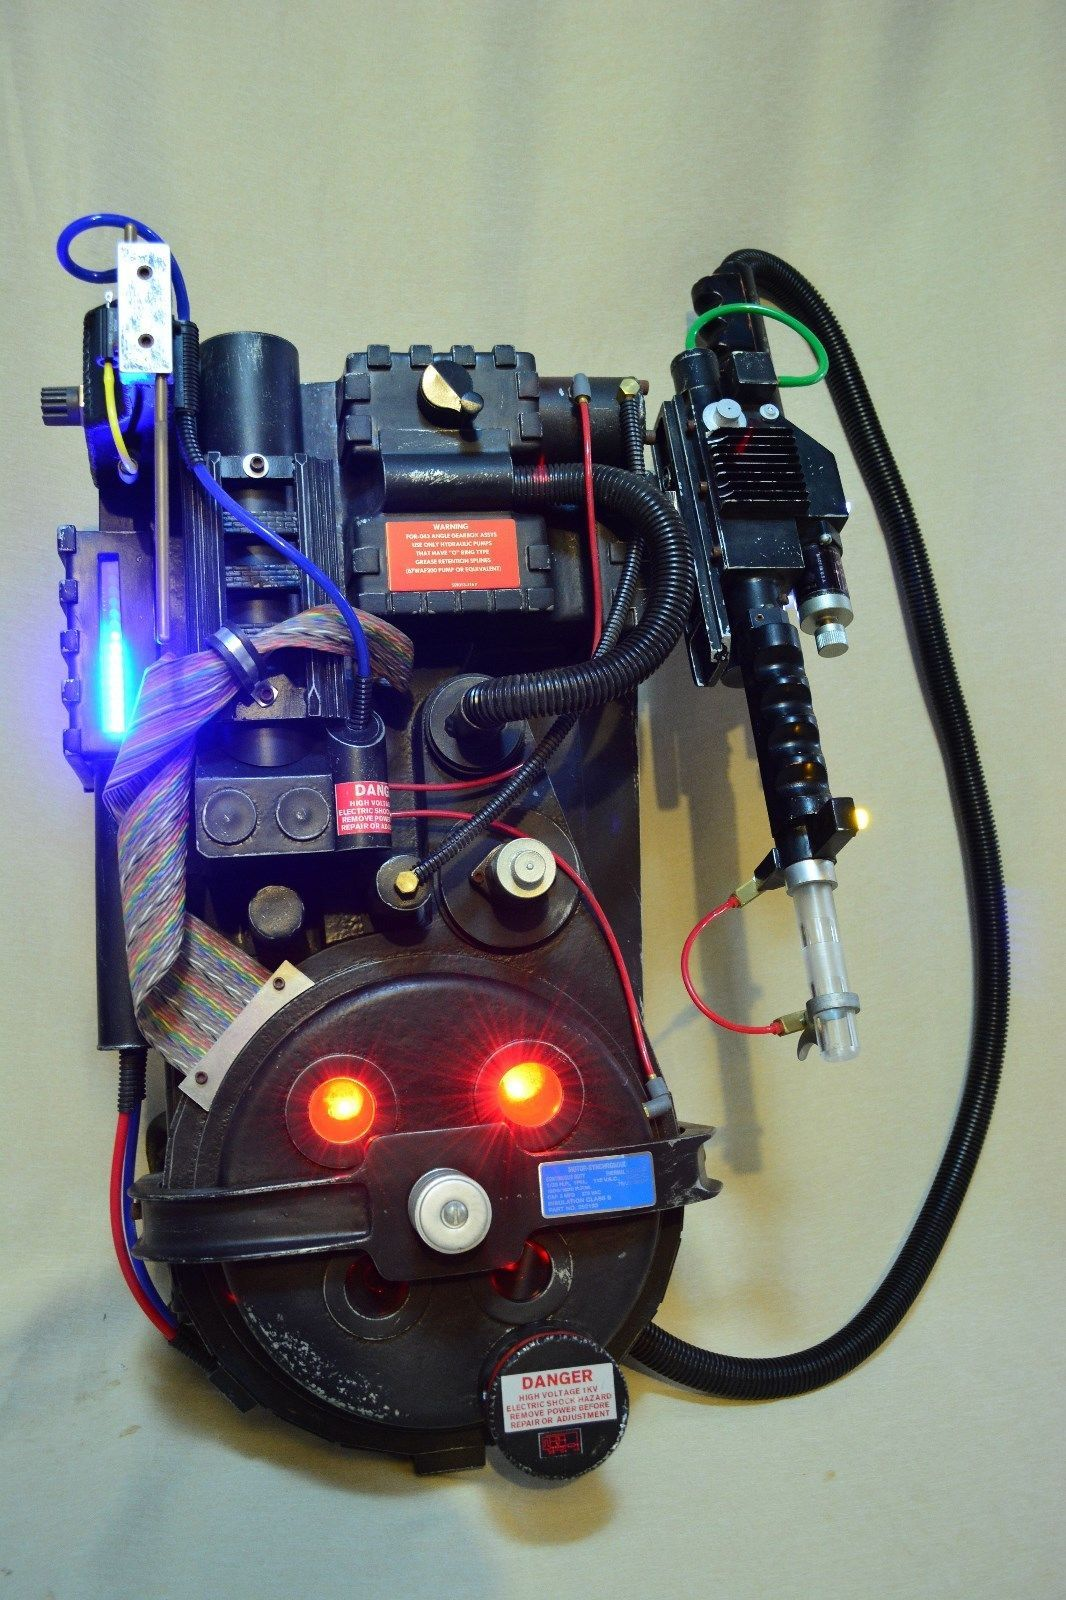 af9201f8516 Ghostbusters 2 Screen Accurate E-Ticket Proton Pack with Lights & Sound i  had one of these when i was a kid lol